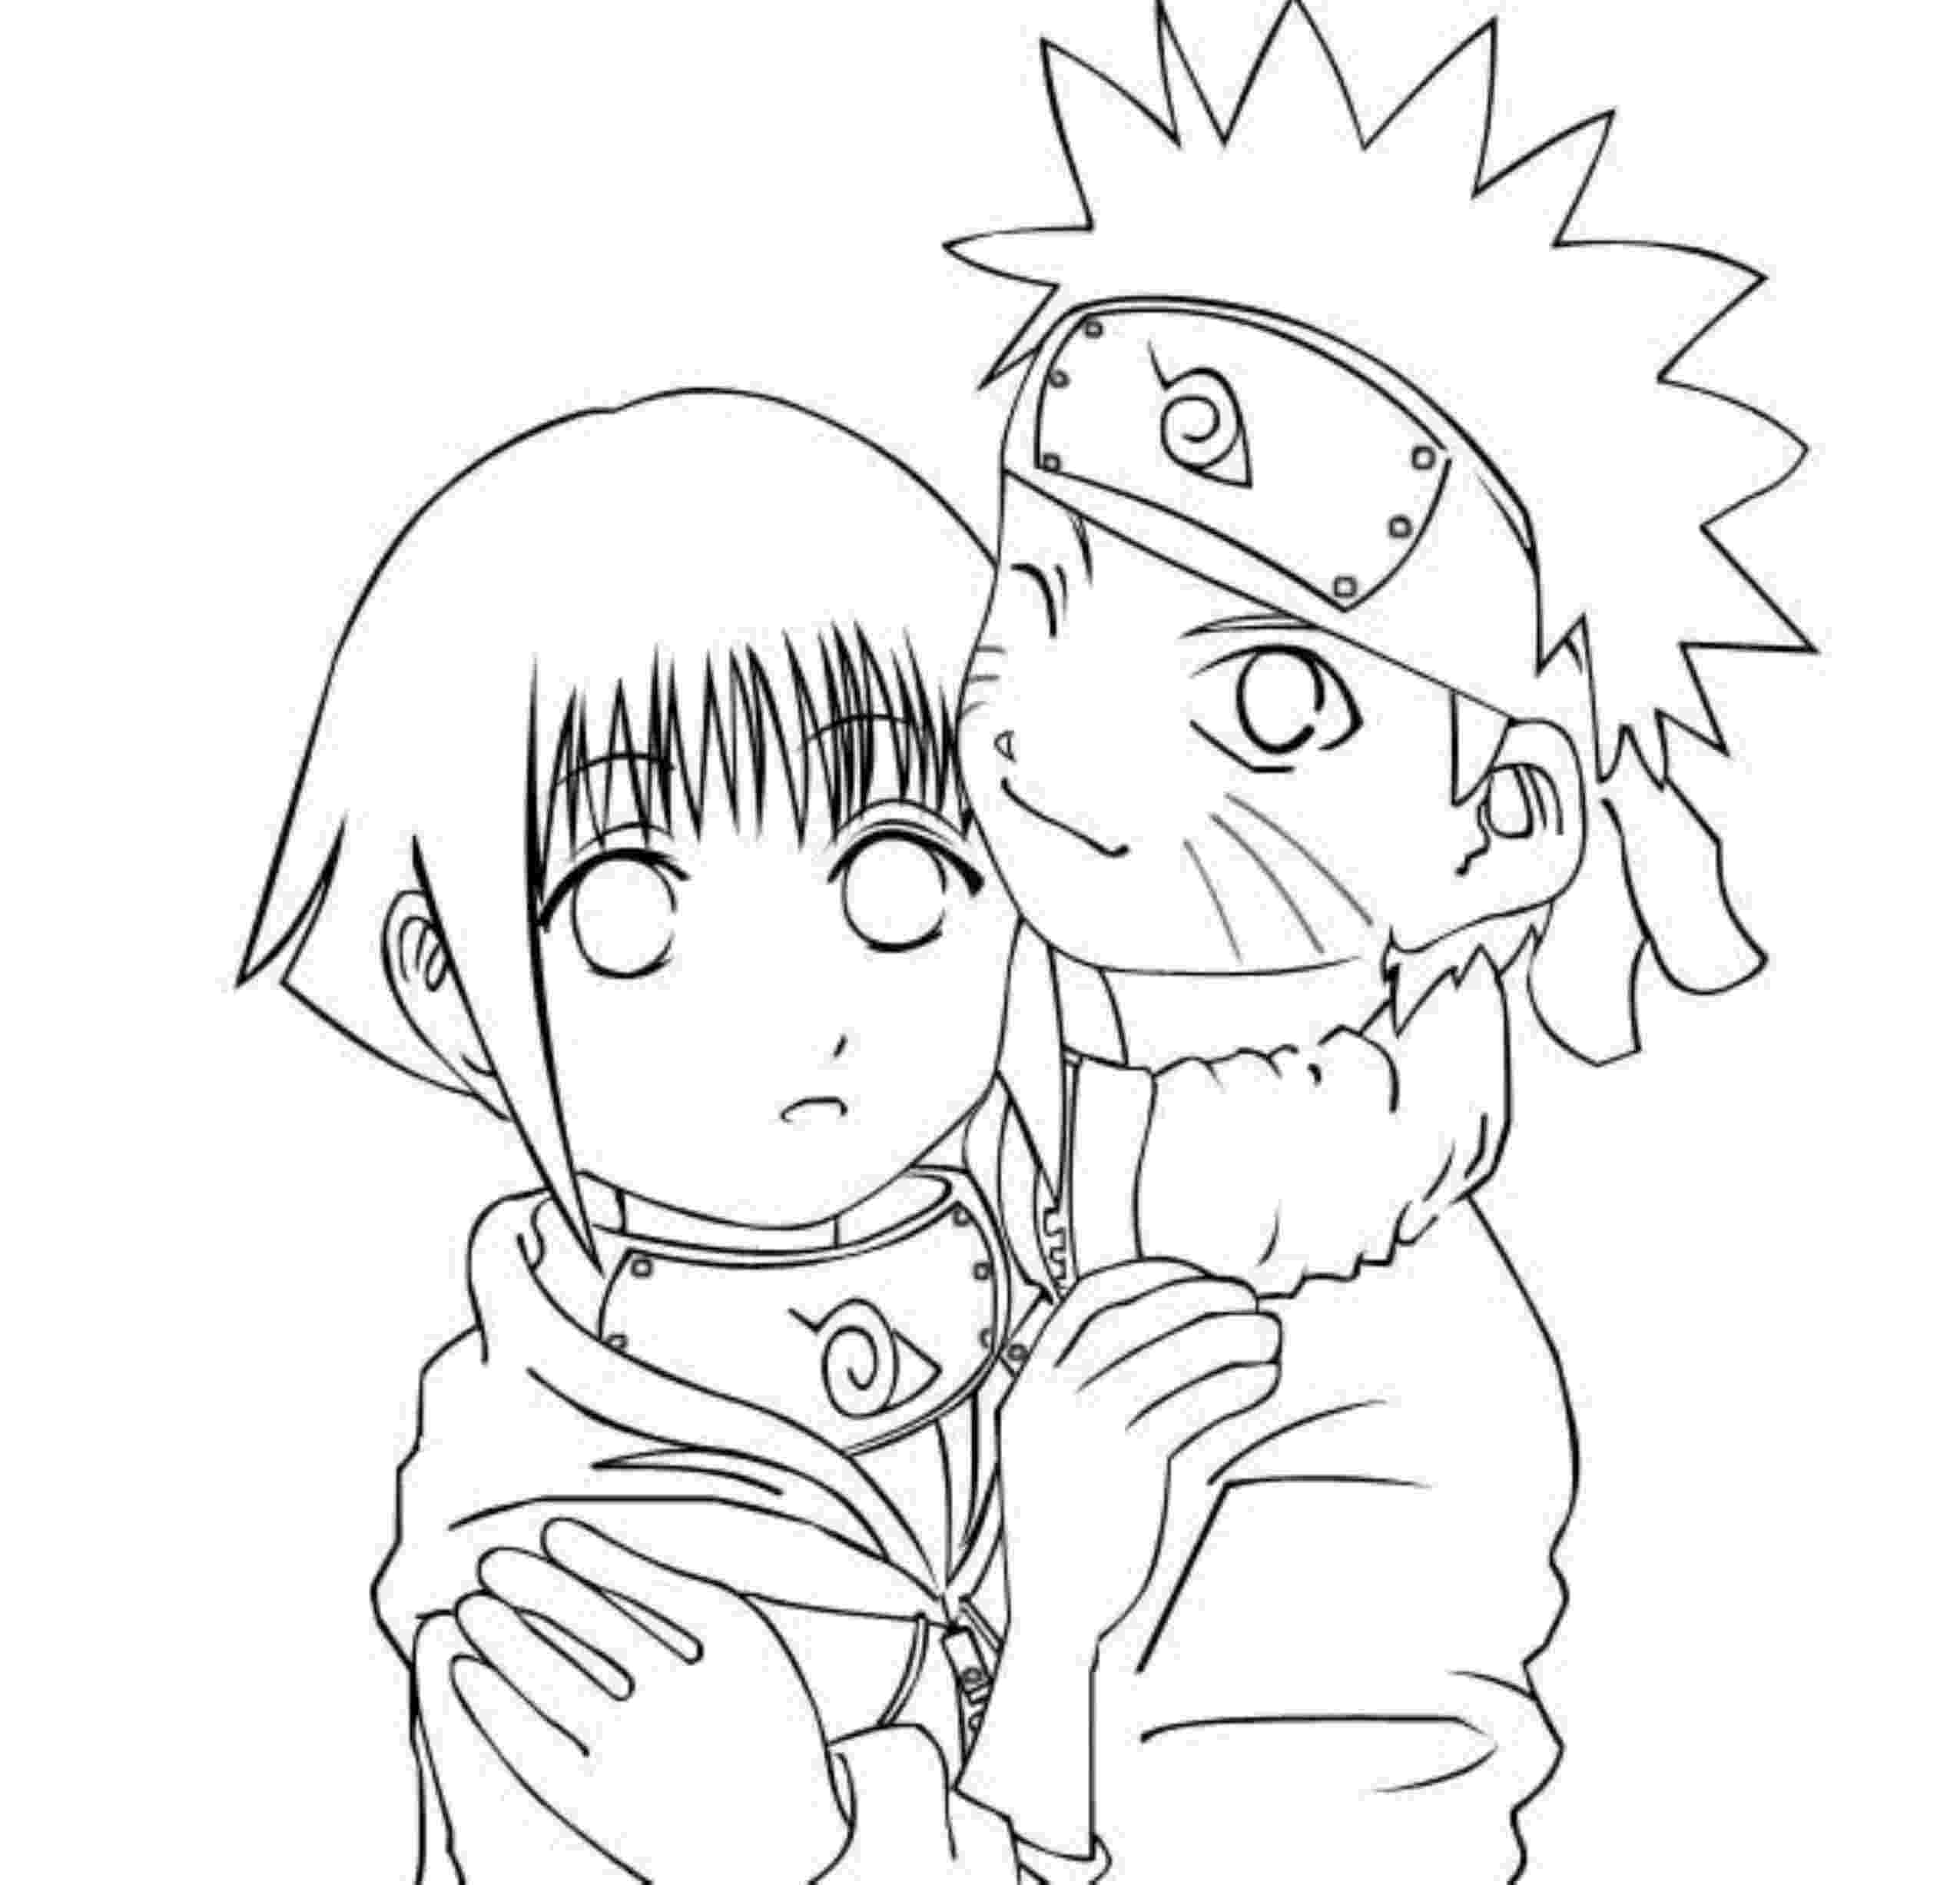 naruto shippuden coloring pages naruto shippuden coloring pages to download and print for free pages shippuden coloring naruto